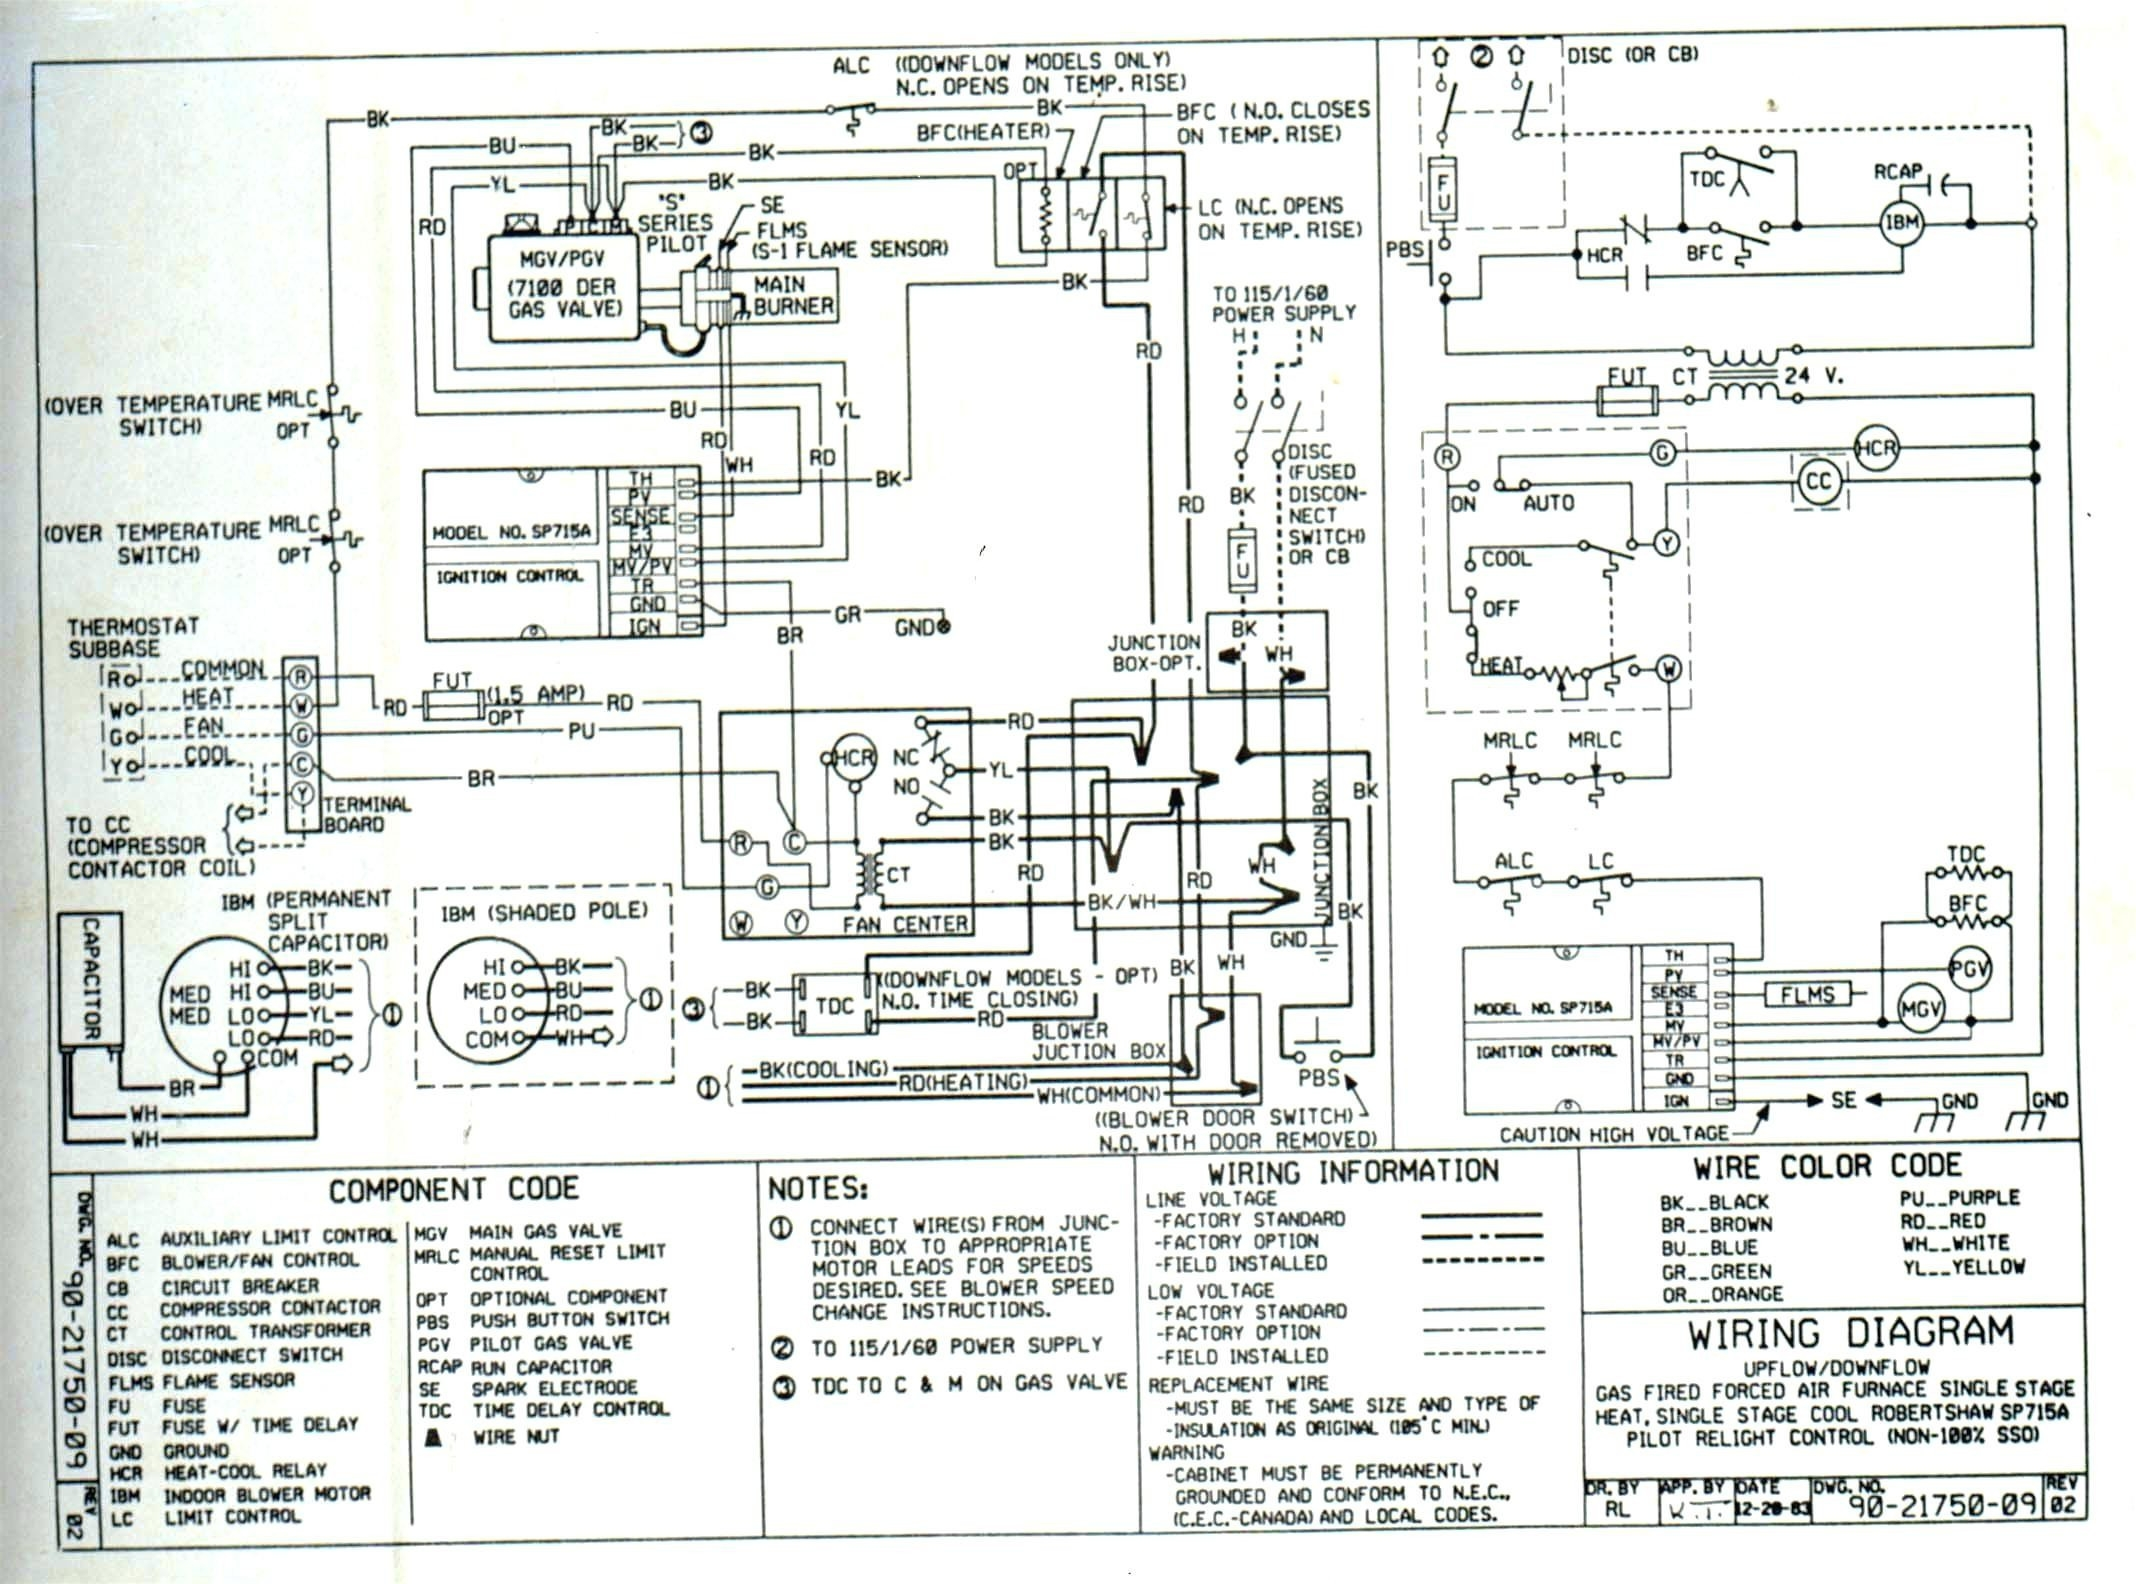 trane thermostat wiring diagram Download-Wiring Diagram Explained Fresh Trane thermostat Wiring Diagram Luxury Wiring Diagram for Trane 14-f